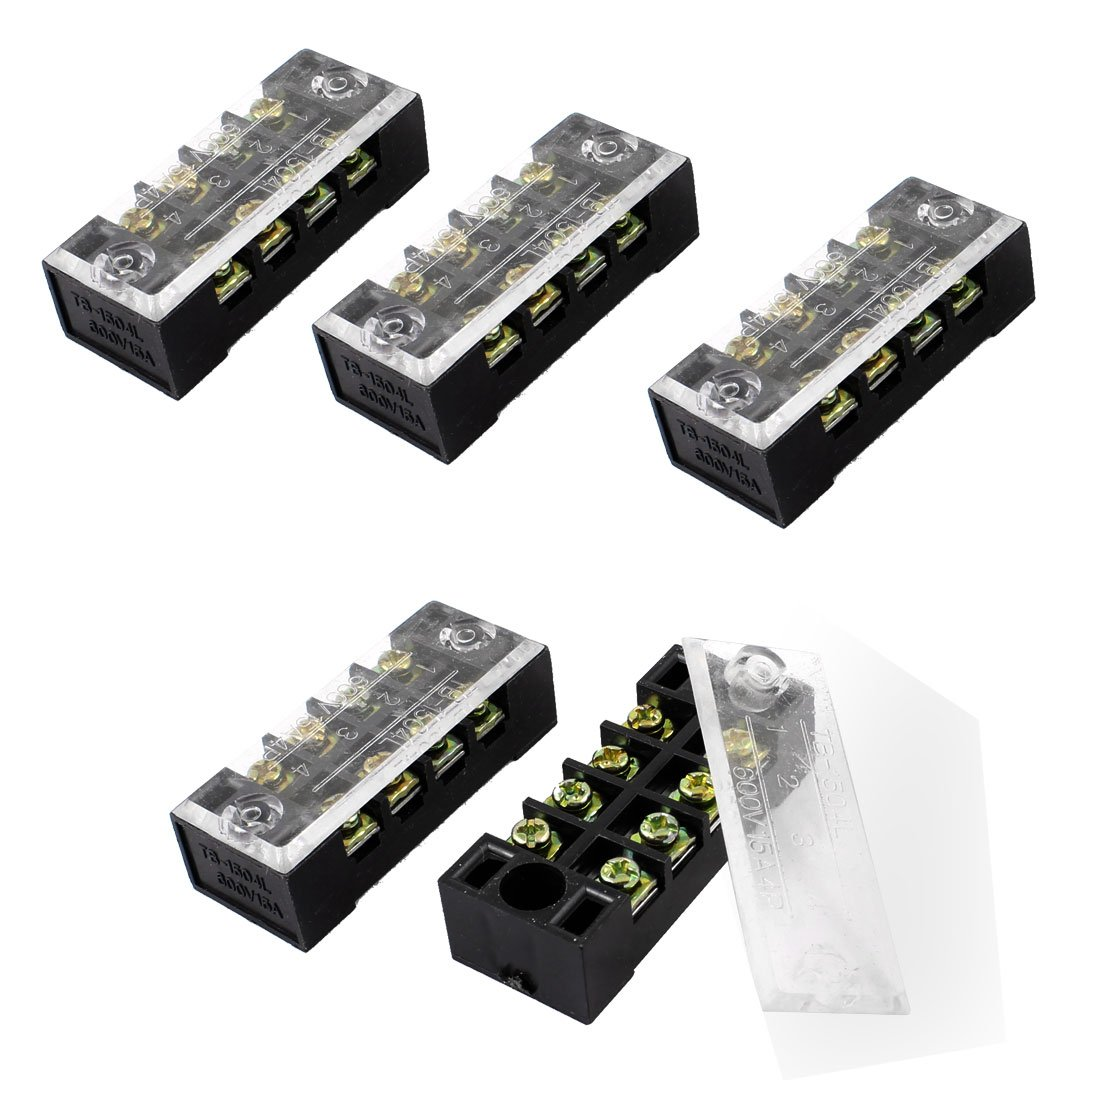 WSFS Hot 5 Pcs Dual Row 4 Position Covered Screw Terminal Block Strip 600V 15A hot factory direct wholesale idc40 male plug 40pin port header terminal breakout pcb board block 2 row screw